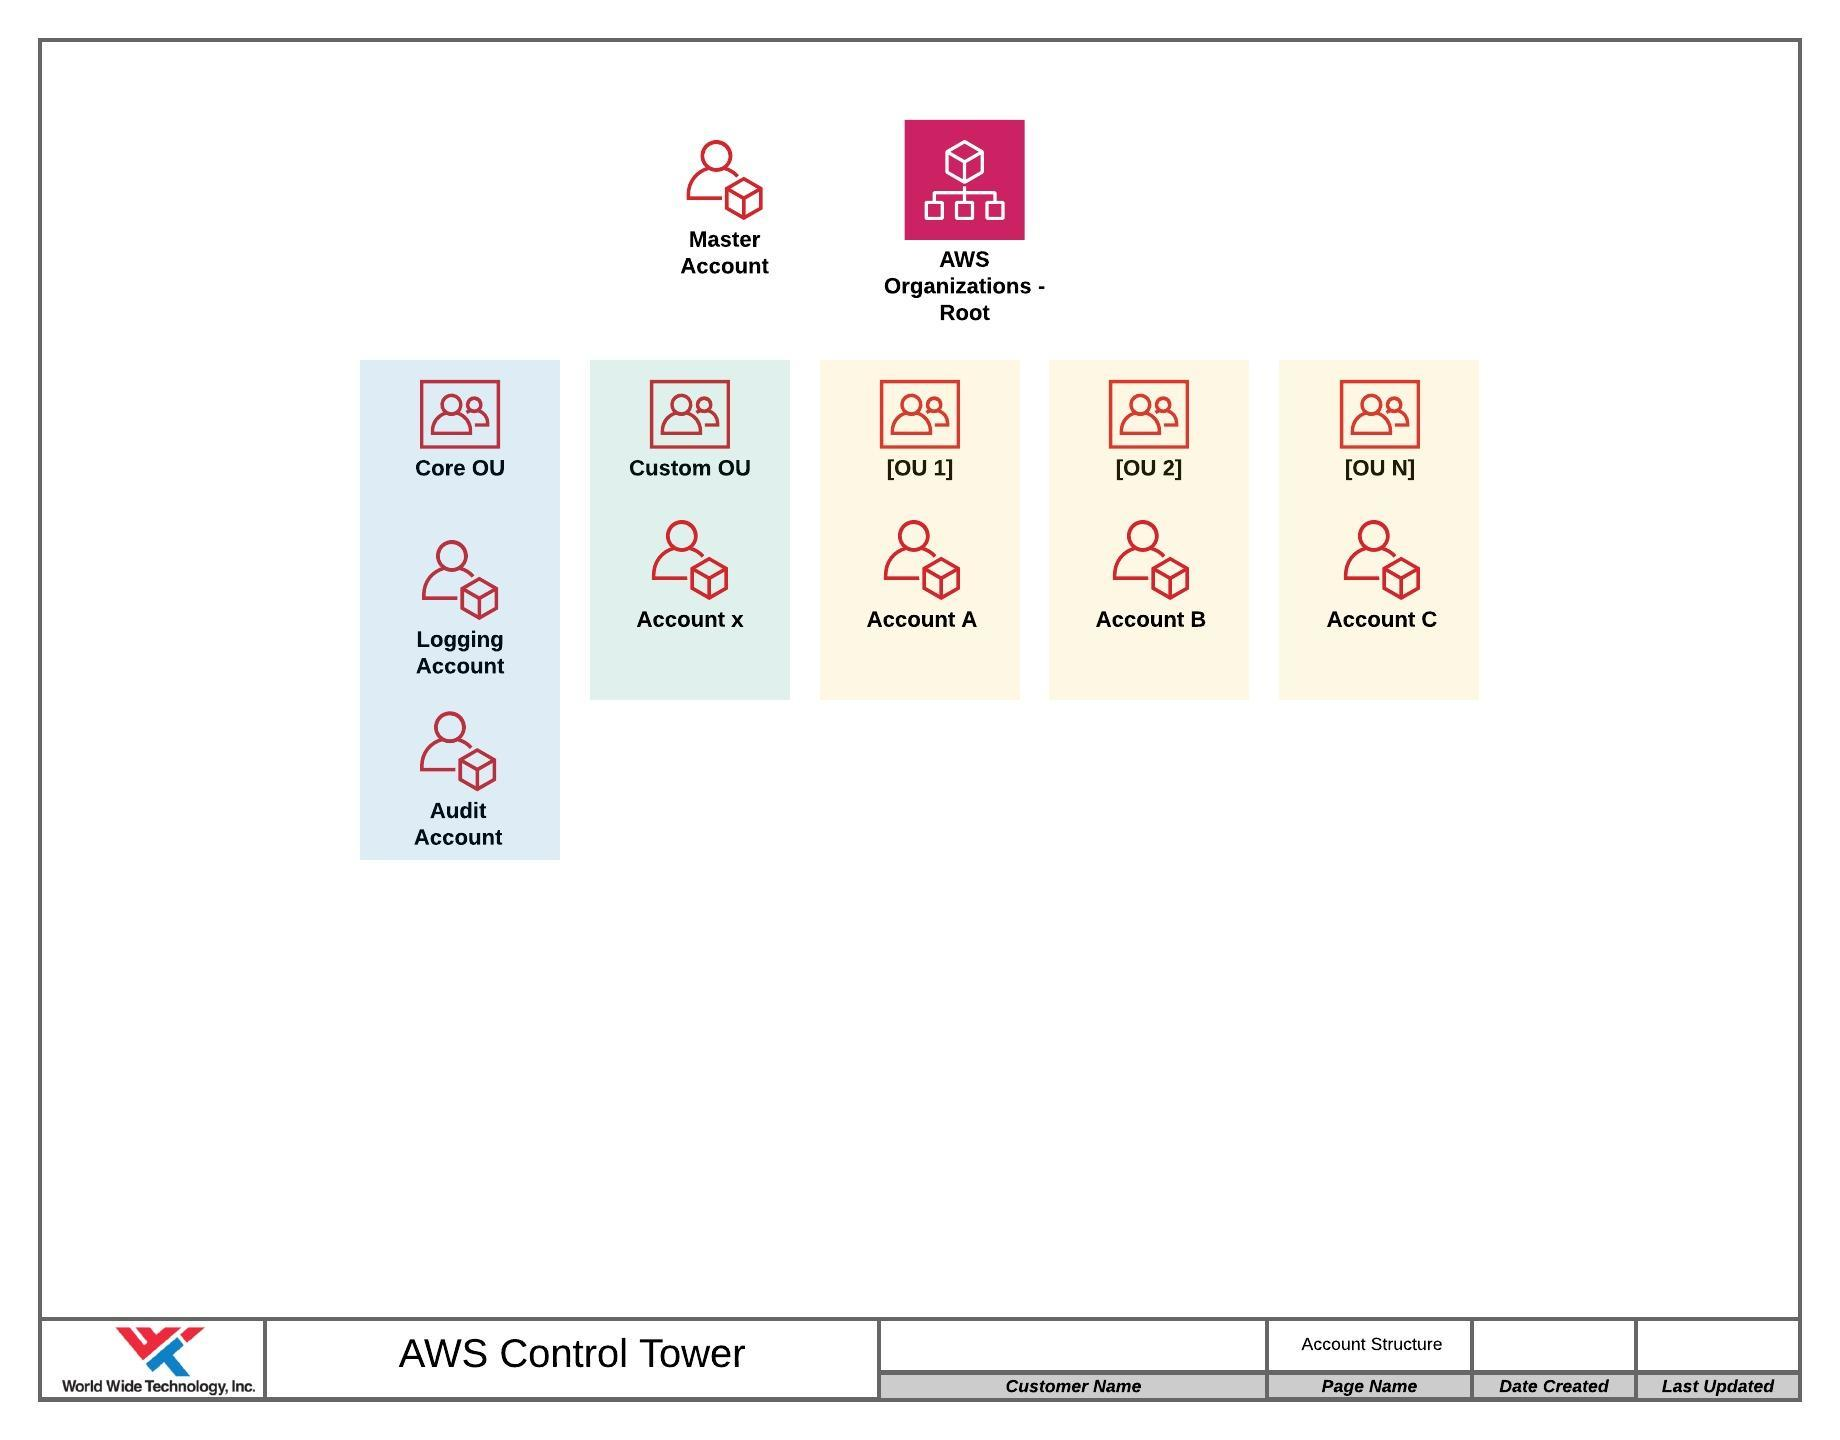 AWS Control Tower master account